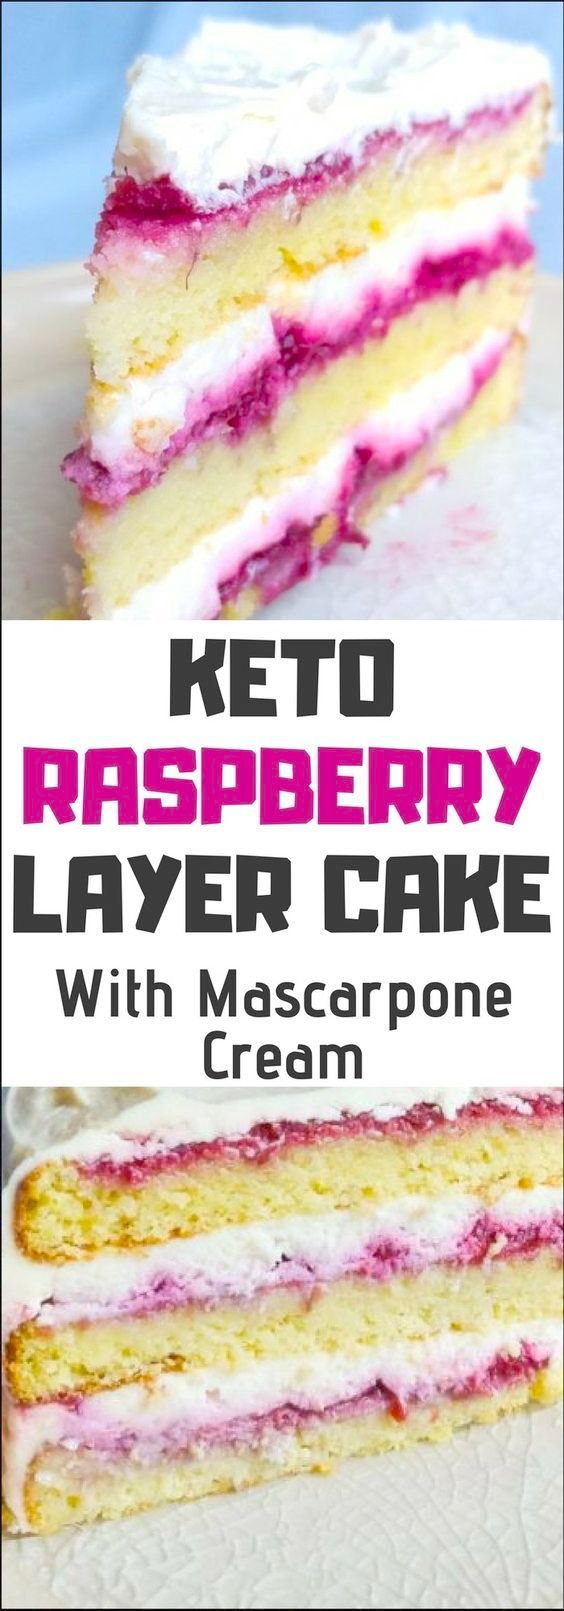 3 Keto Desserts That are Absolutely Delicious #ketodesserts